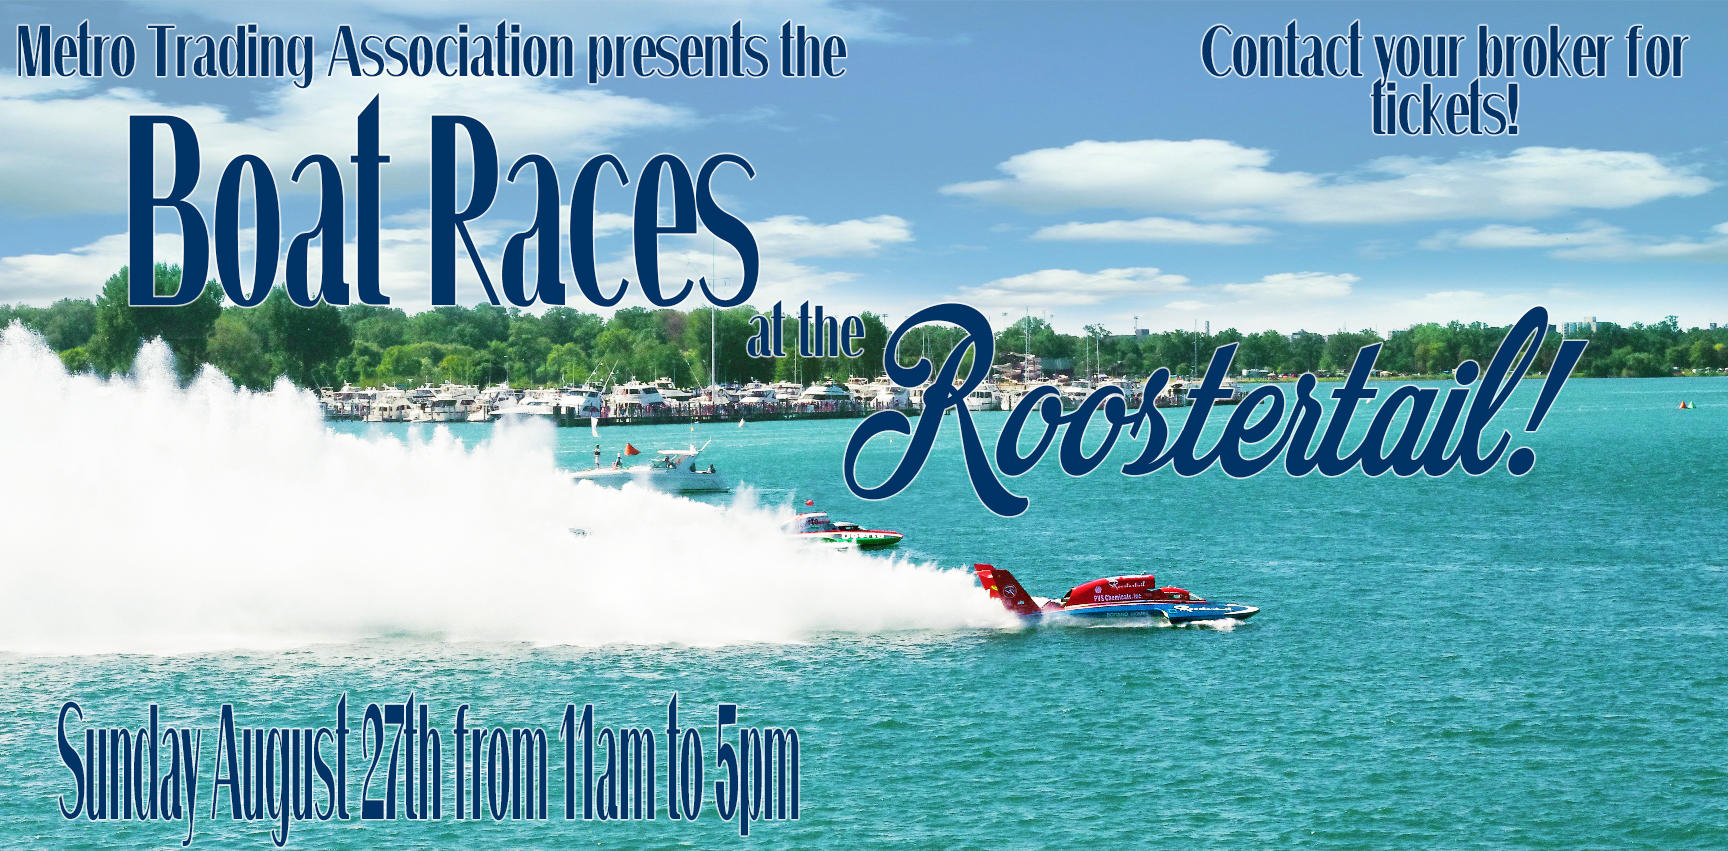 Boat Races at the Roostertail!